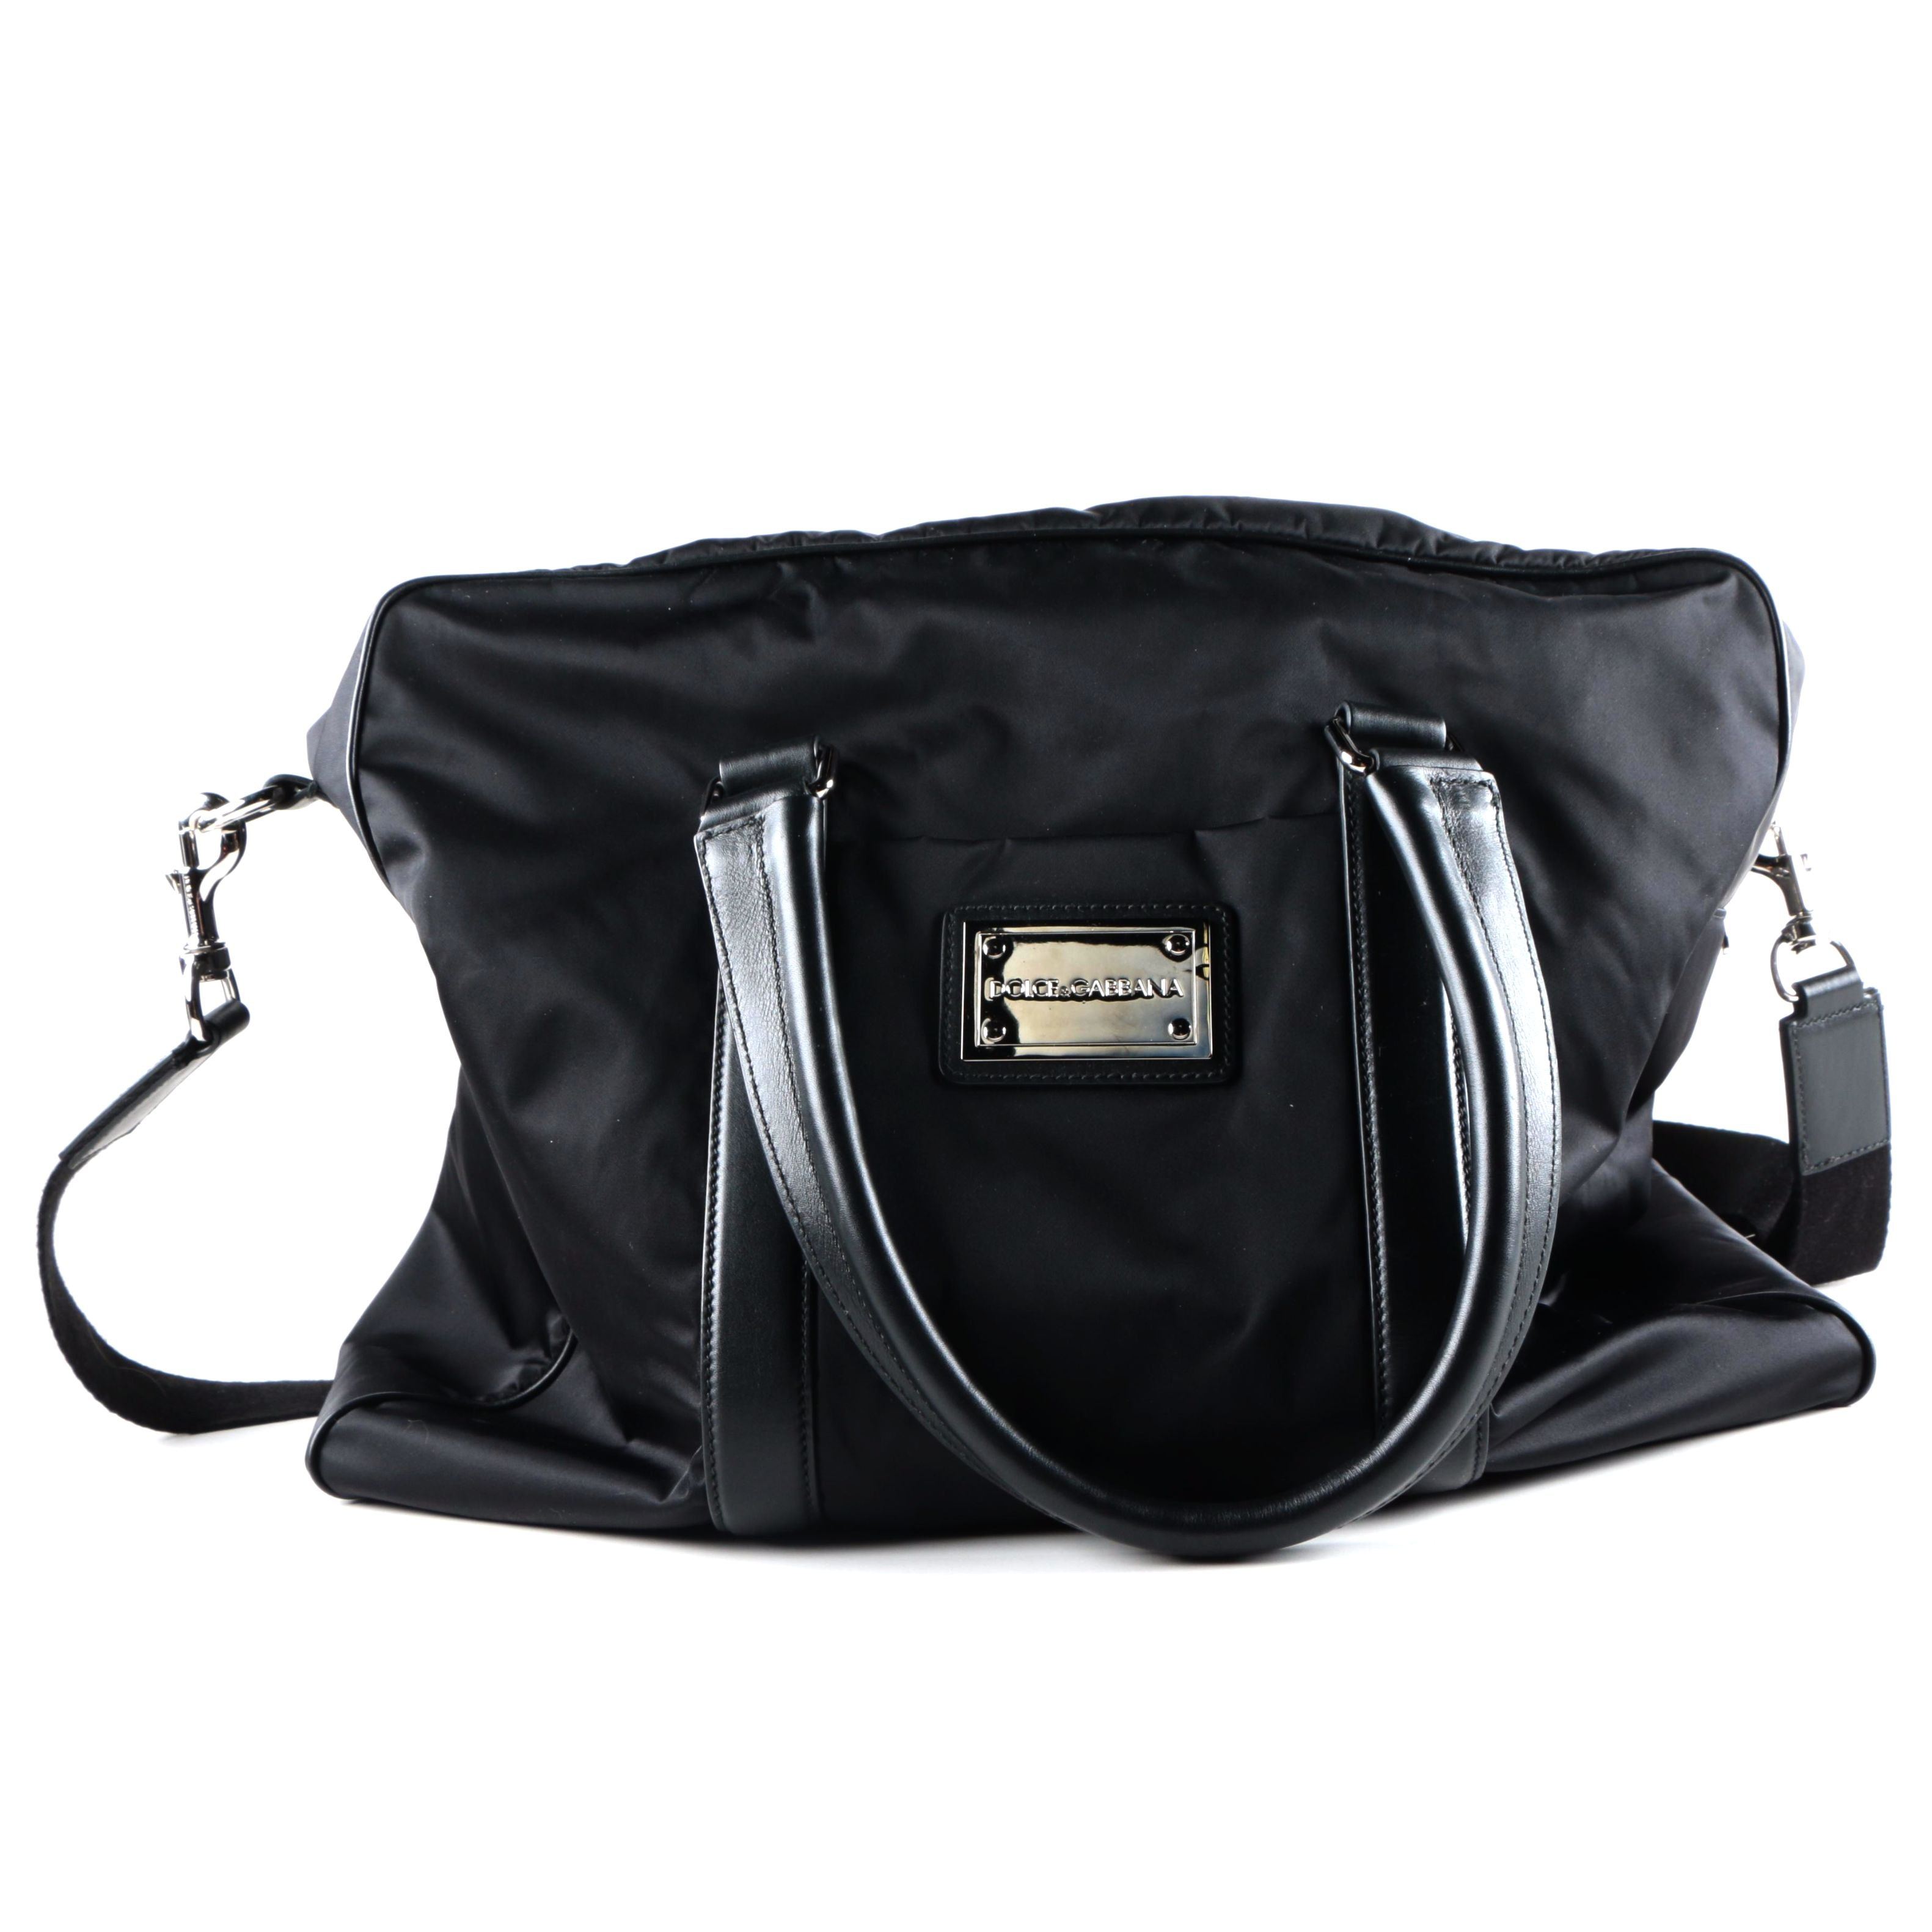 Dolce & Gabanna Black Nylon Duffle Bag